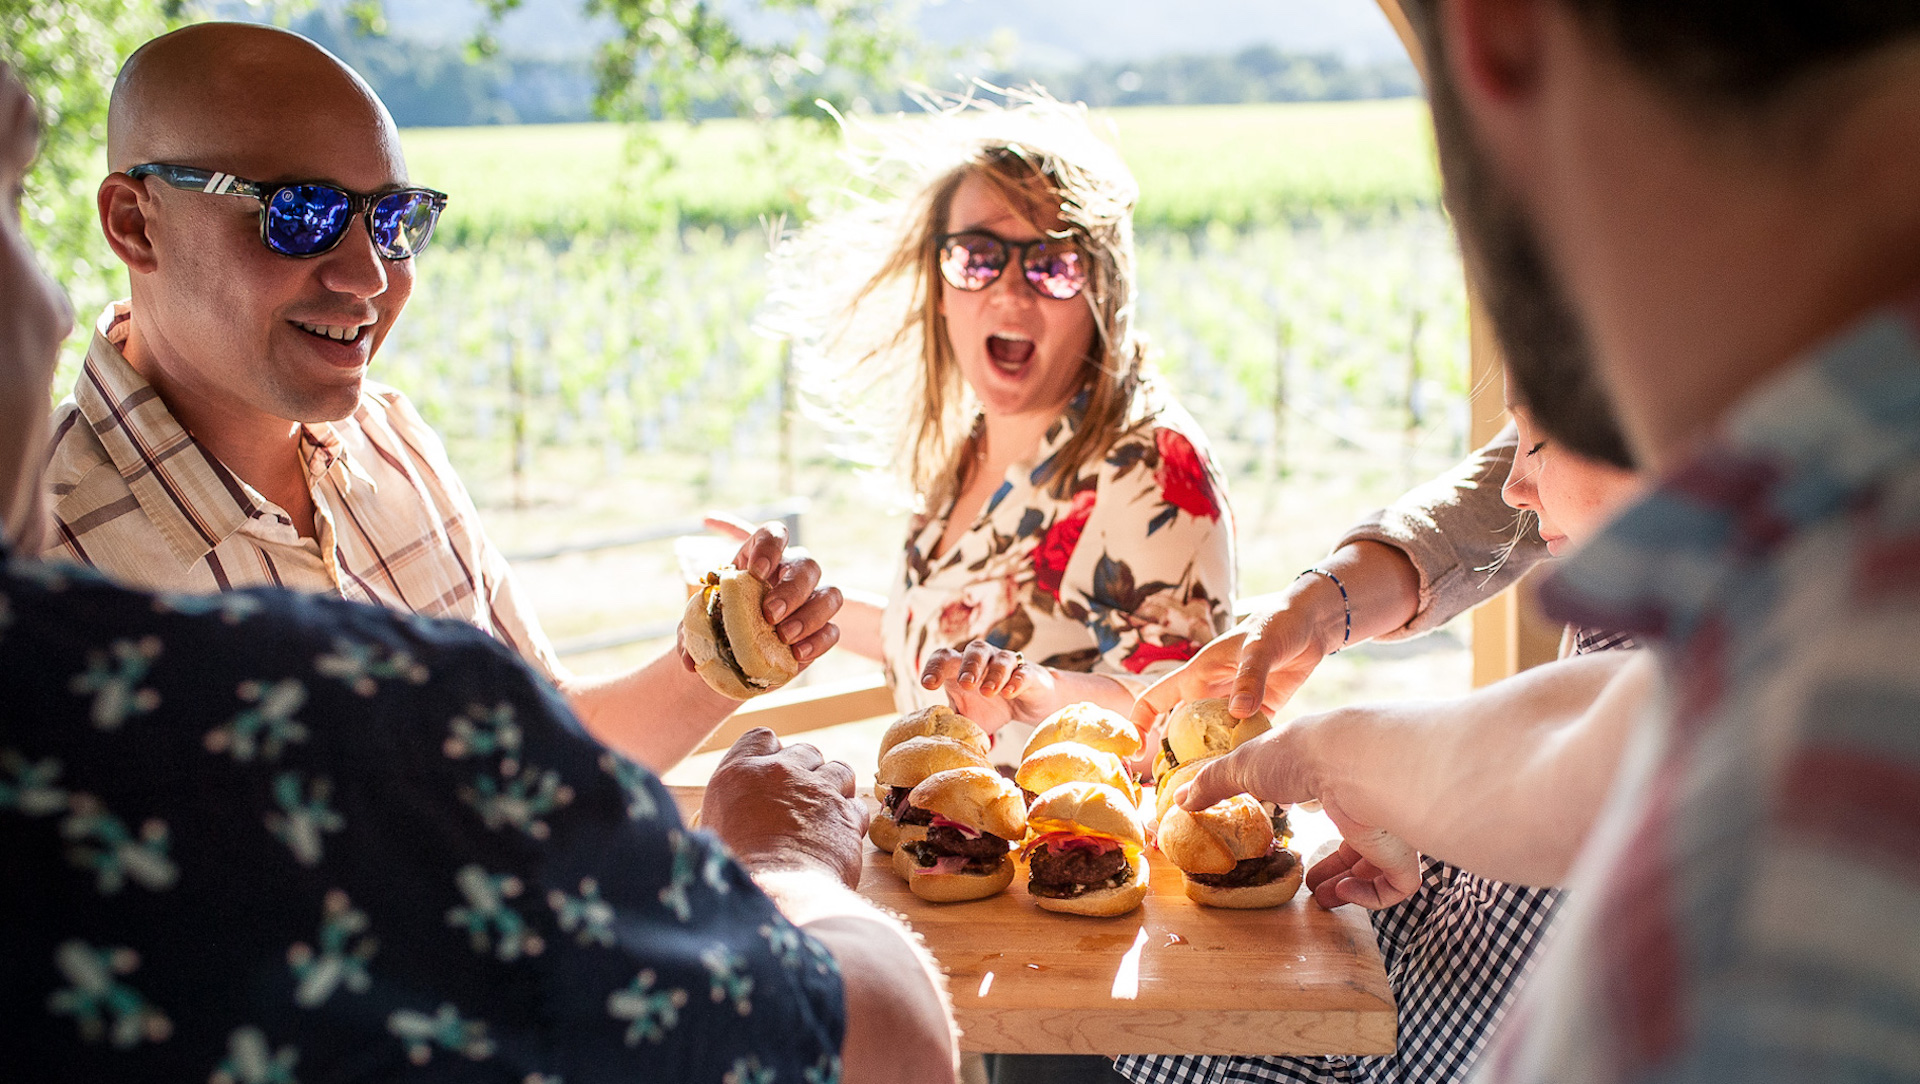 Group of grabbing burgers off of wooden tray at vineyard in Napa Valley